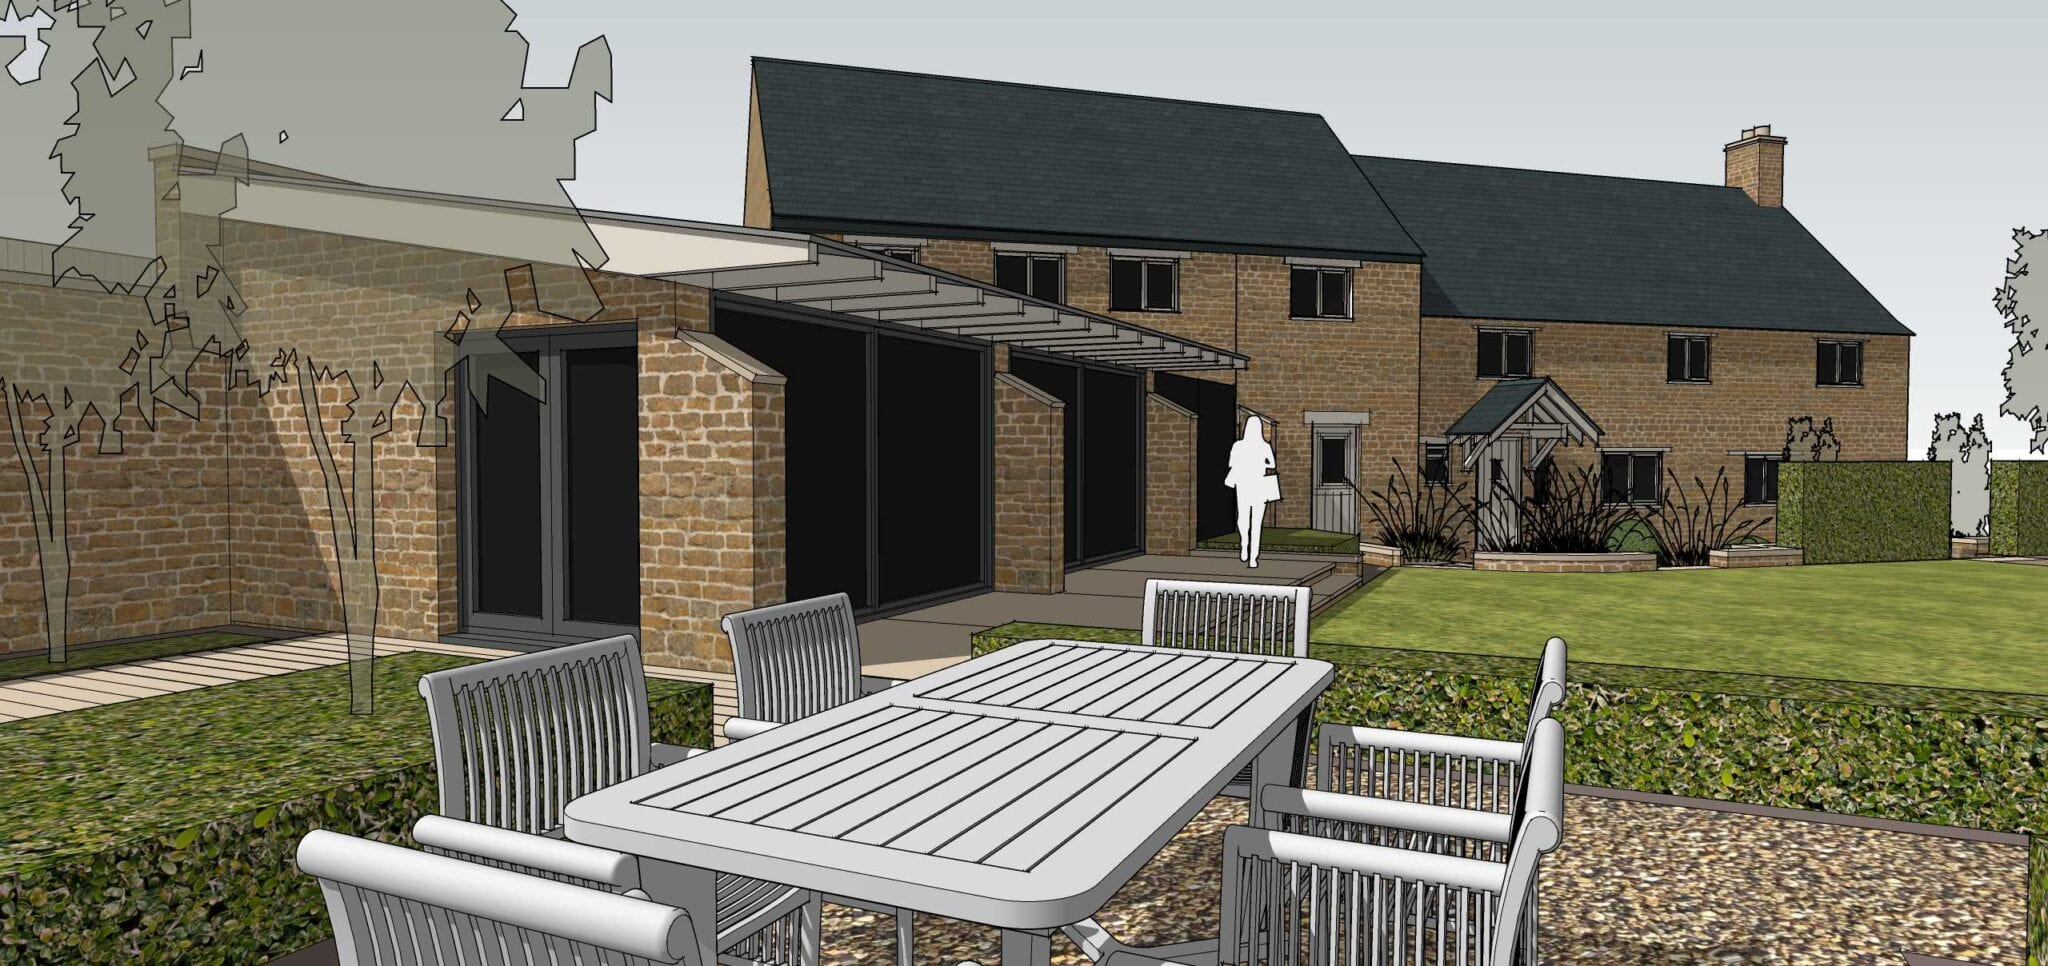 Planning Permission Secured for Glass/Stone Garden Room within Conservation Area…